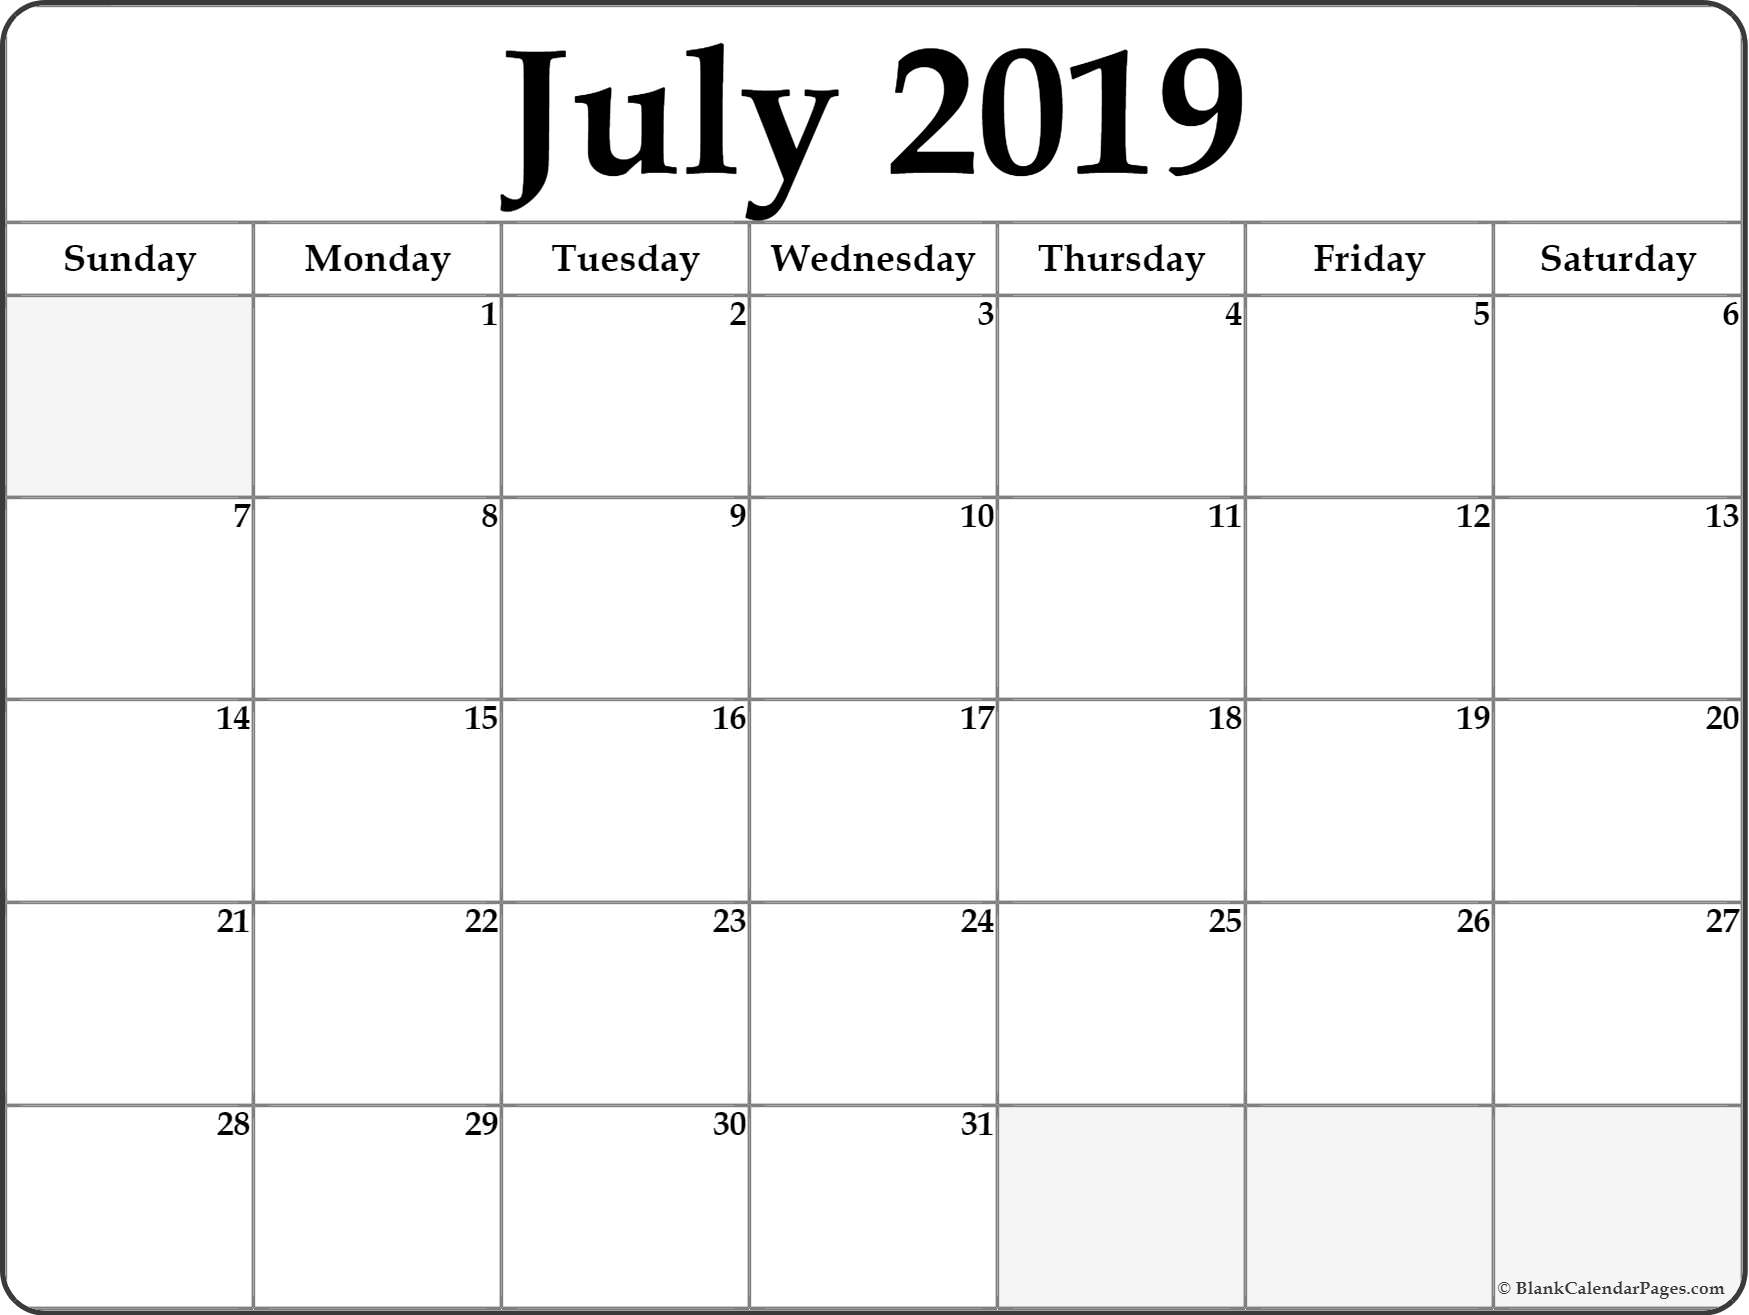 July 2019 Calendar | Free Printable Monthly Calendars throughout Print Off A Blank Calendar For